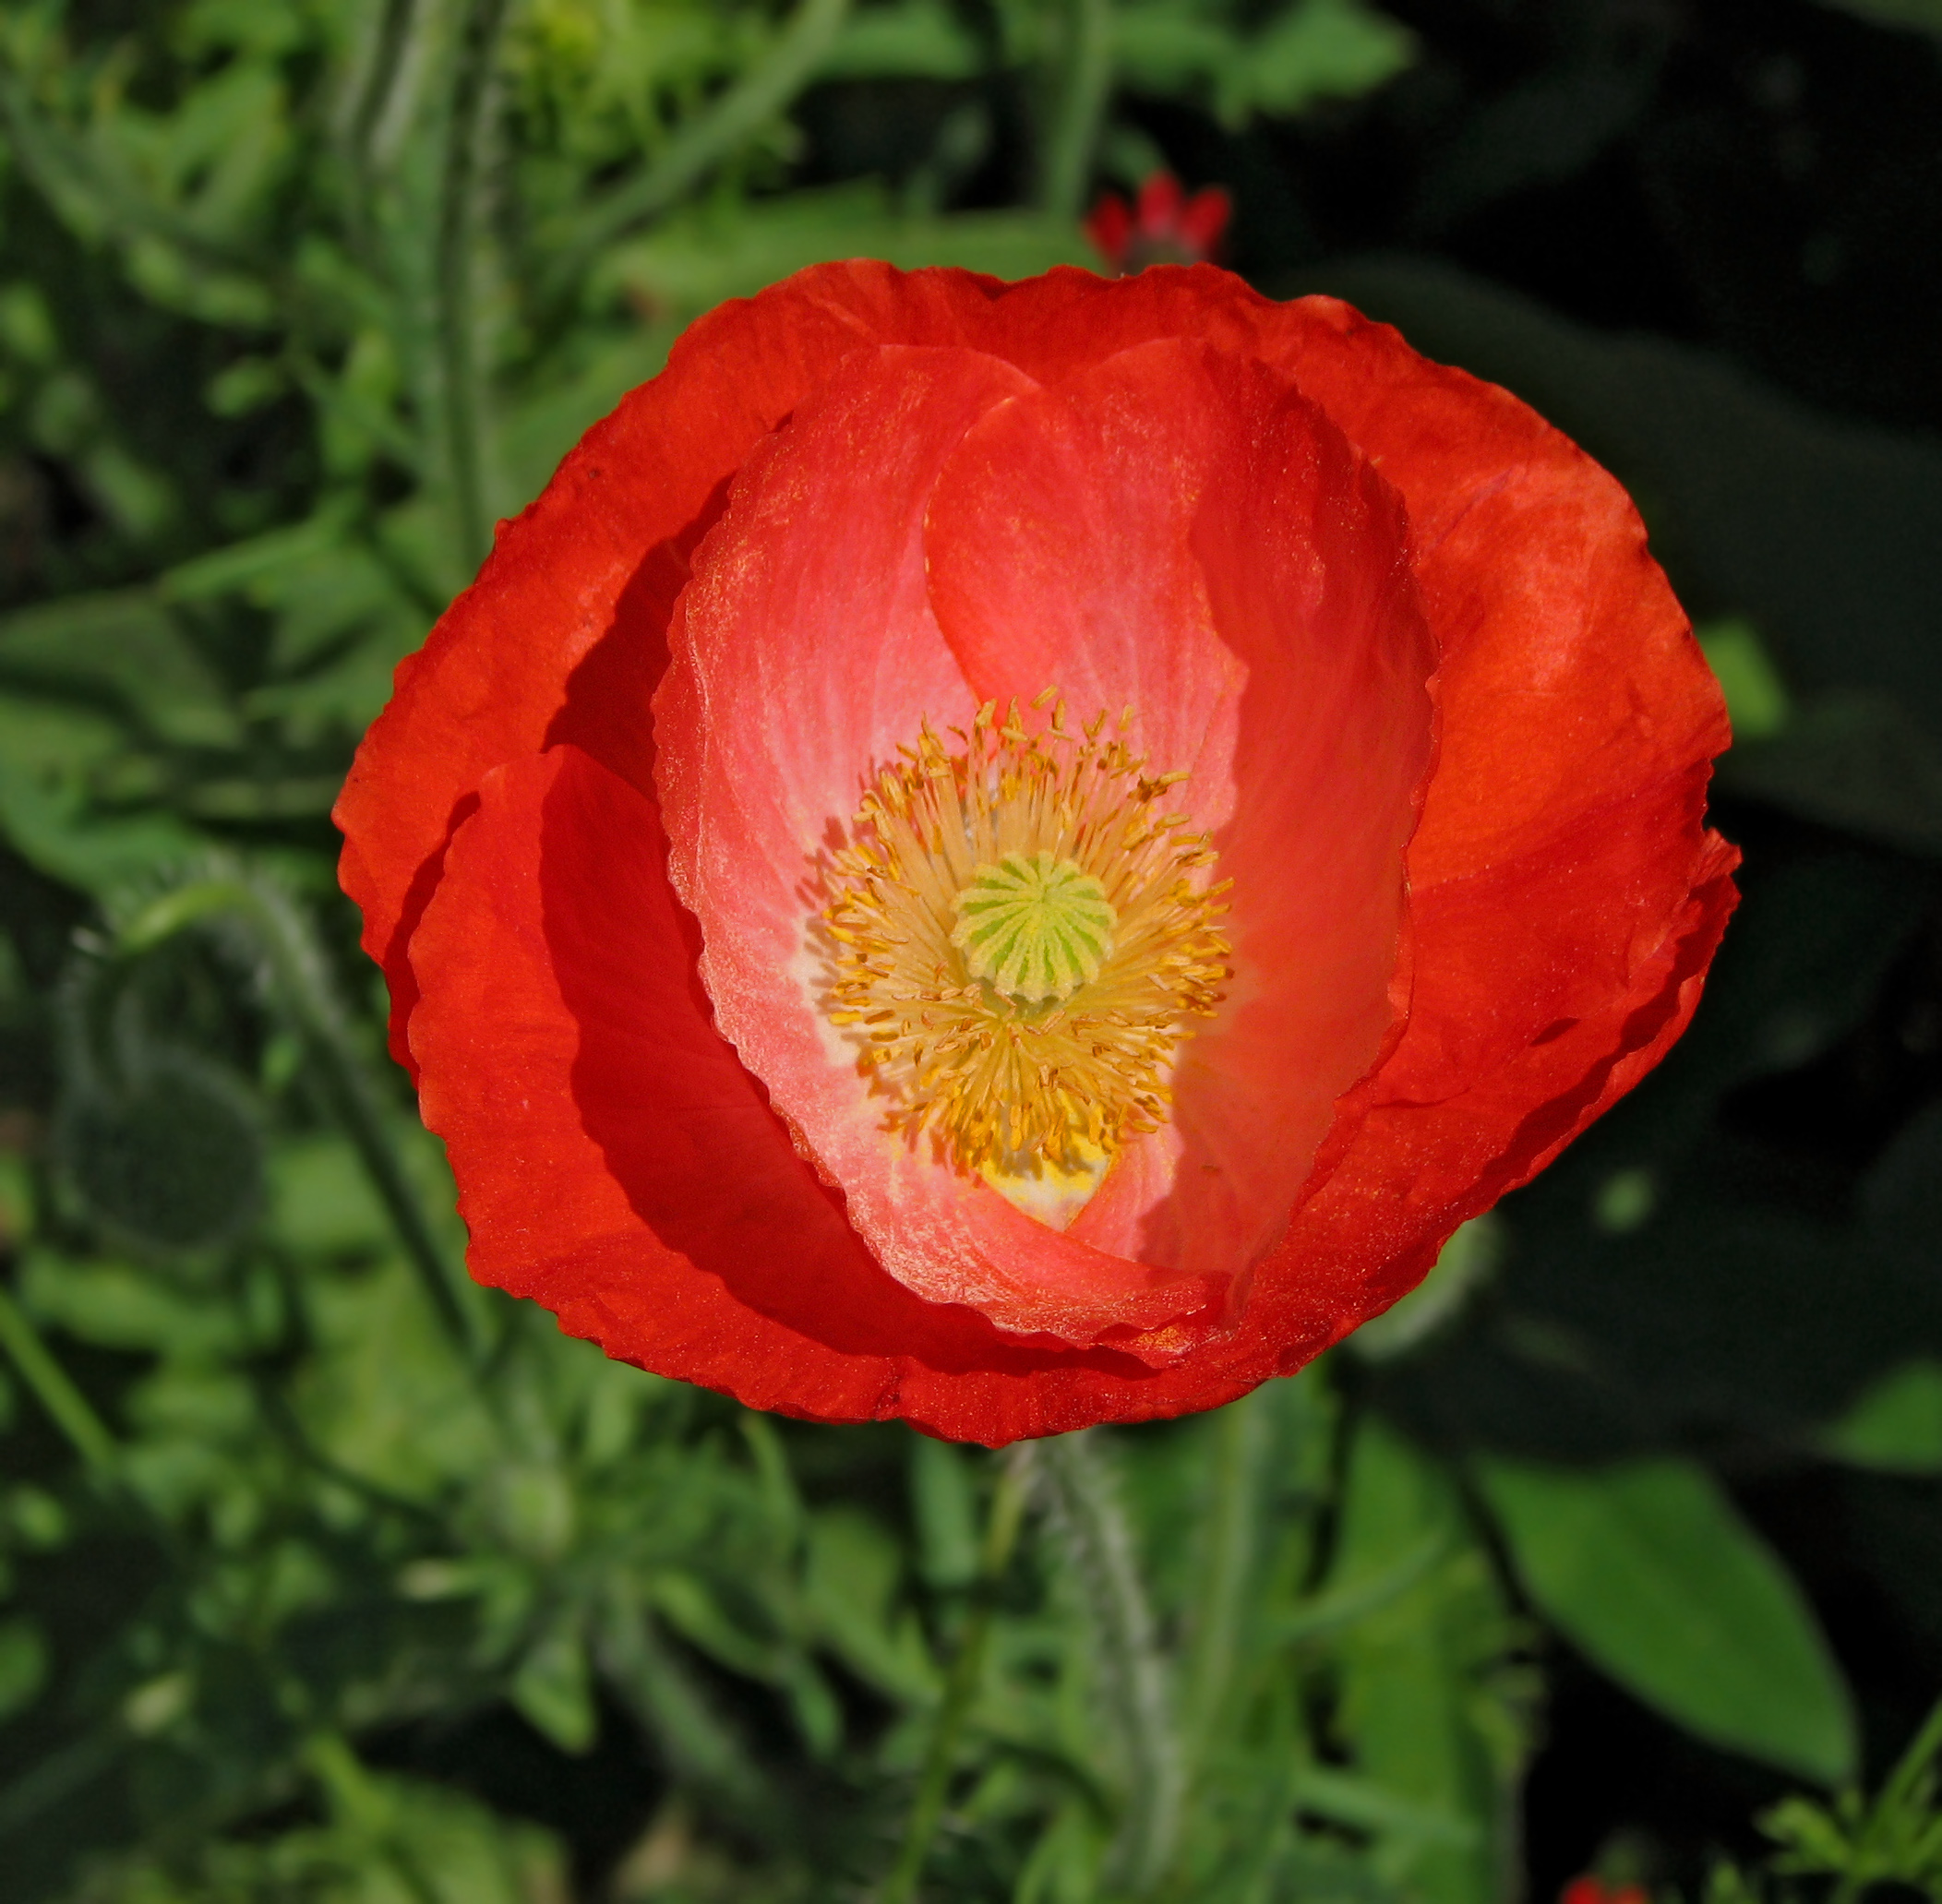 Filered Poppy Papaver Flower Center 2104pxg Wikimedia Commons